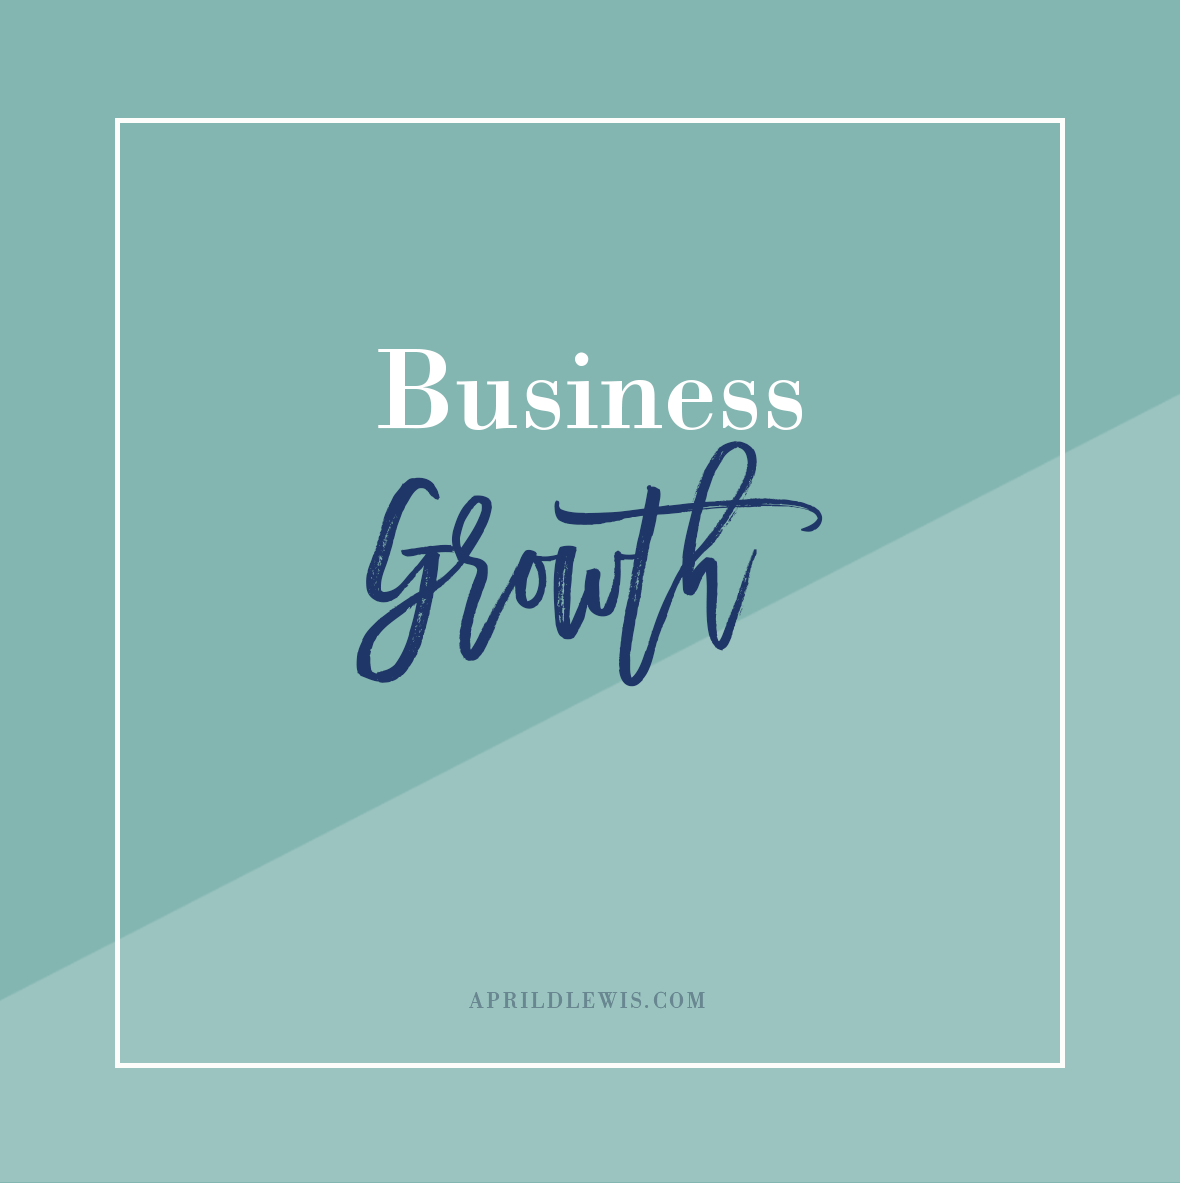 Click here for business growth articles